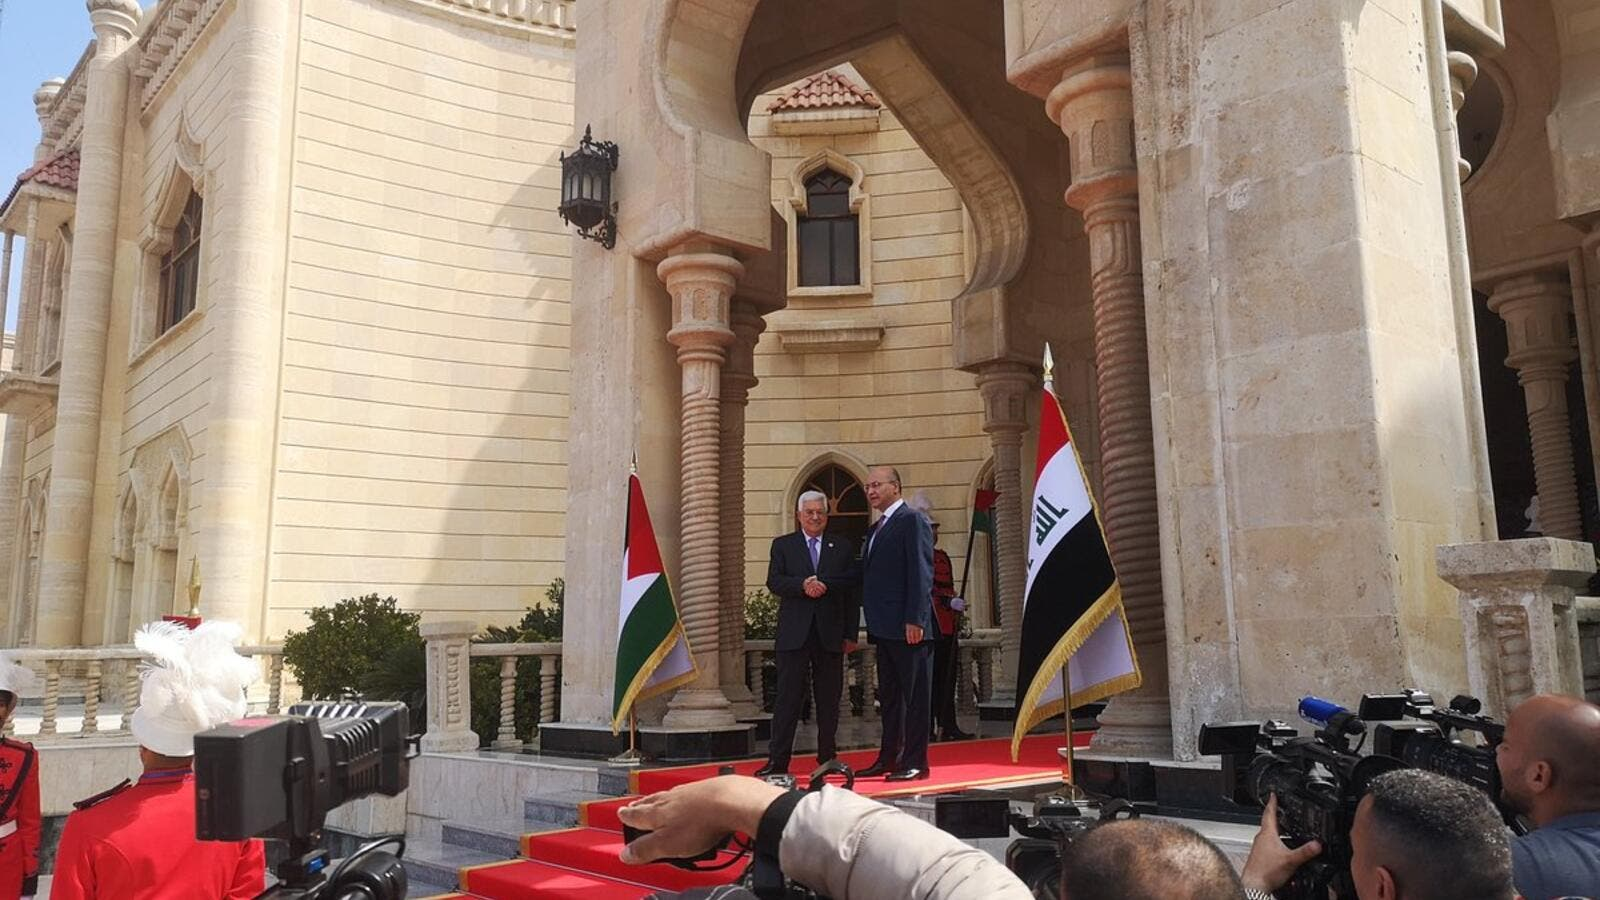 President Mahmoud Abbas arrives at presidential palace in Baghdad to meet Iraqi Prime Minister Adel Abdel Mahdi. (Twitter)